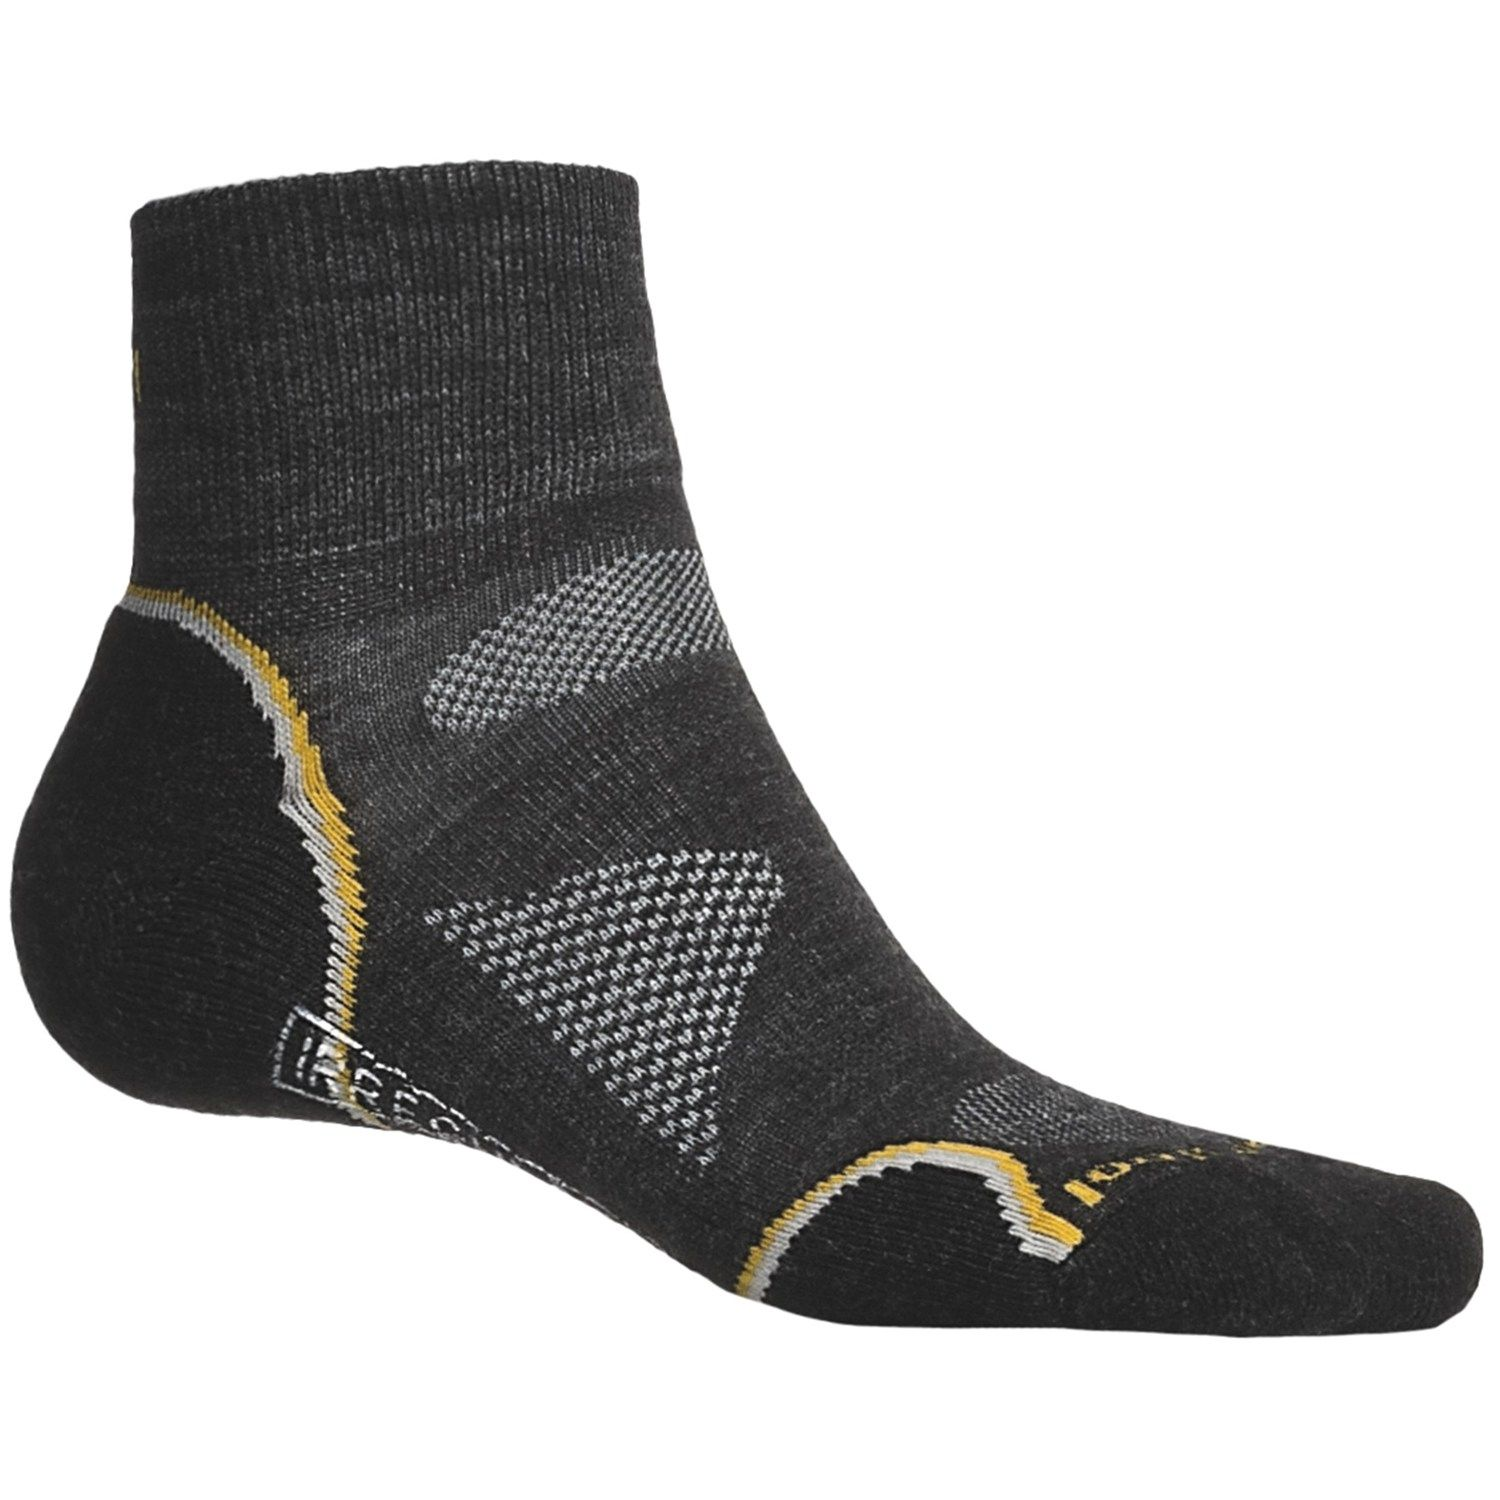 Smartwool phd outdoor light mini socks merino wool for men and 876 smartwool phd outdoor light mini socks merino wool for men and women aloadofball Image collections